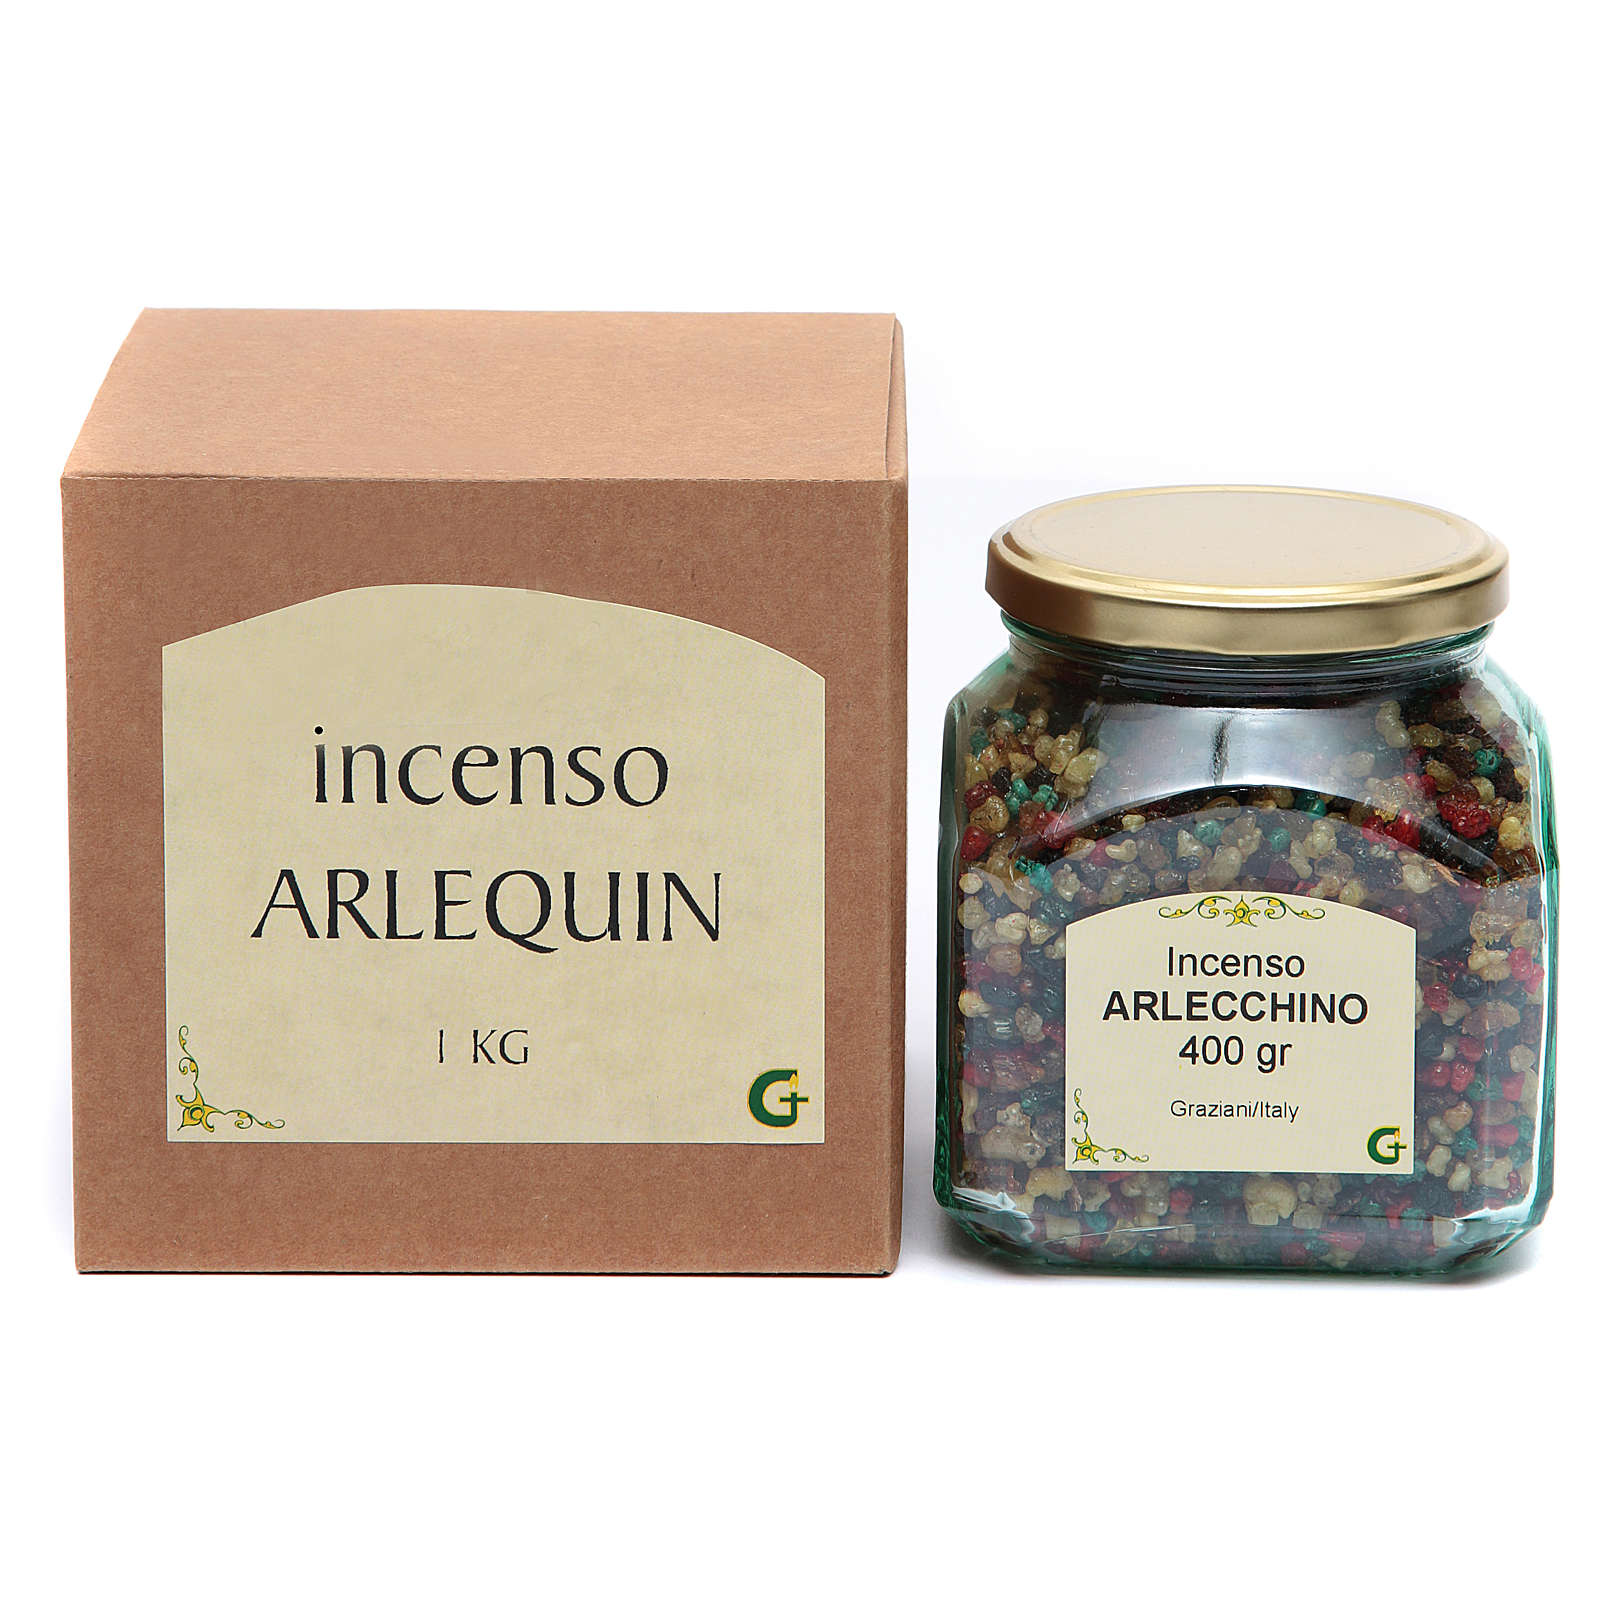 Incenso Arlequin 3